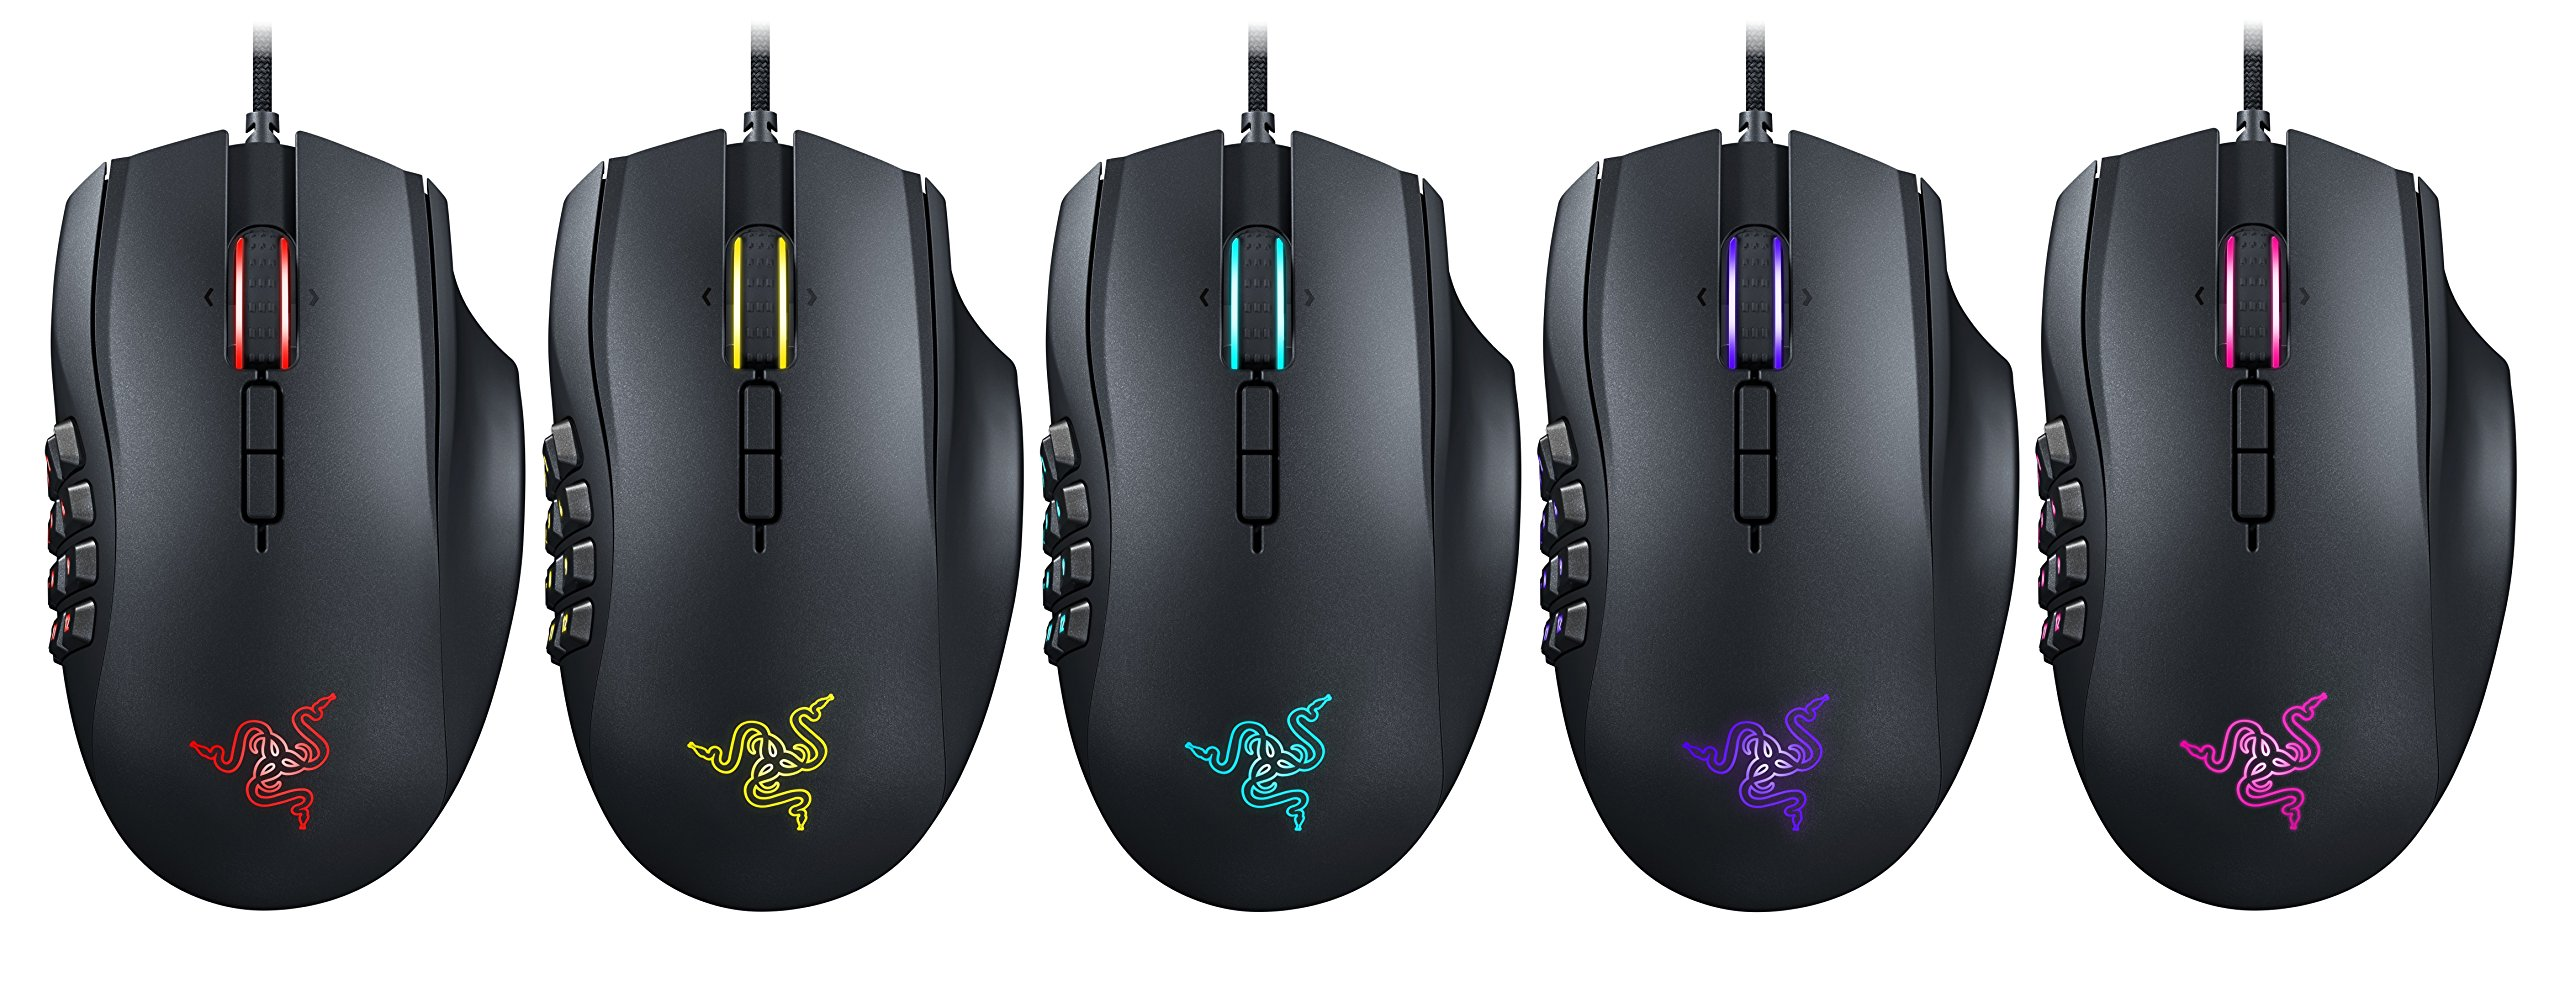 Razer Naga Chroma - Ergonomic RGB MMO Gaming Mouse- 12 Programmable Thumb Buttons & 16,000 Adjustible DPI by Razer